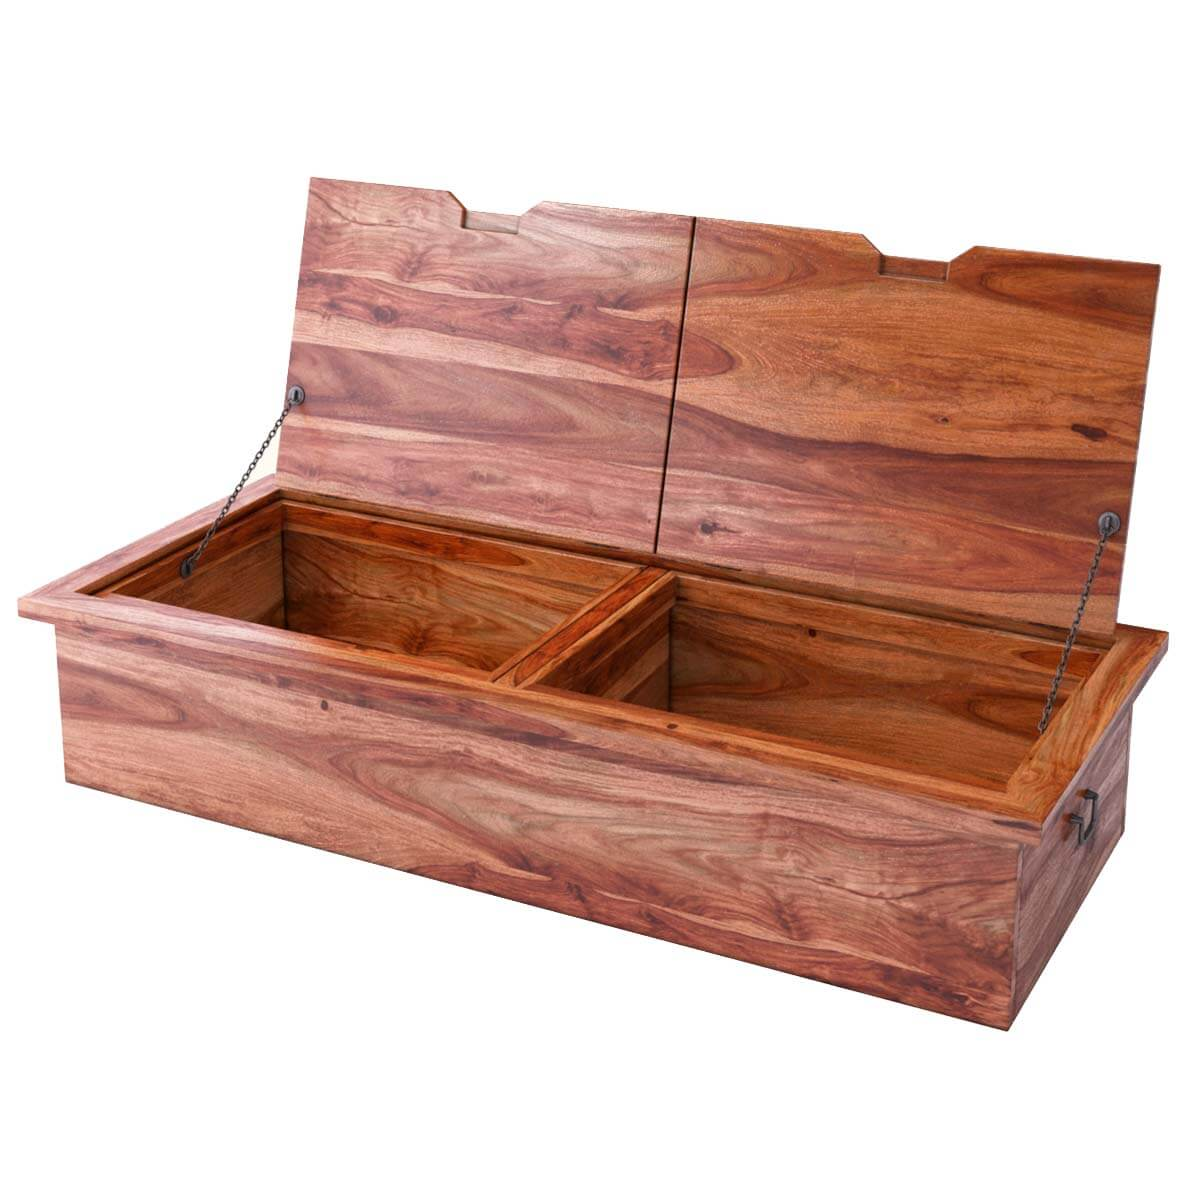 Wood Coffee Table With Storage Delaware Solid Wood Coffee Table Storage Trunk